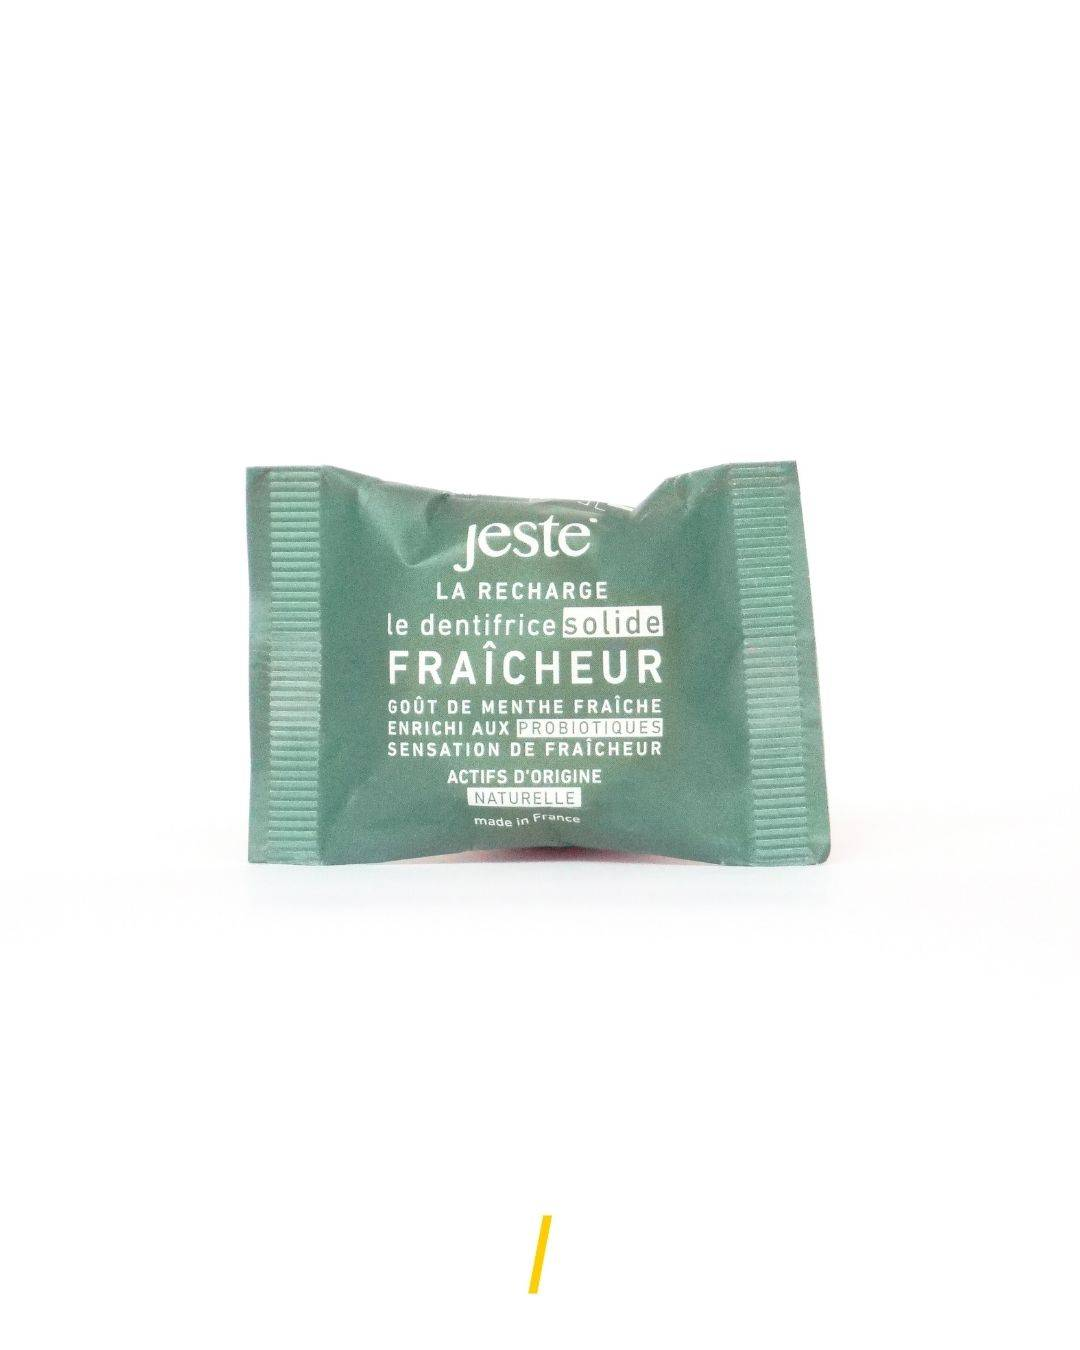 Dentifrice fraîcheur Jeste - The Trust Society